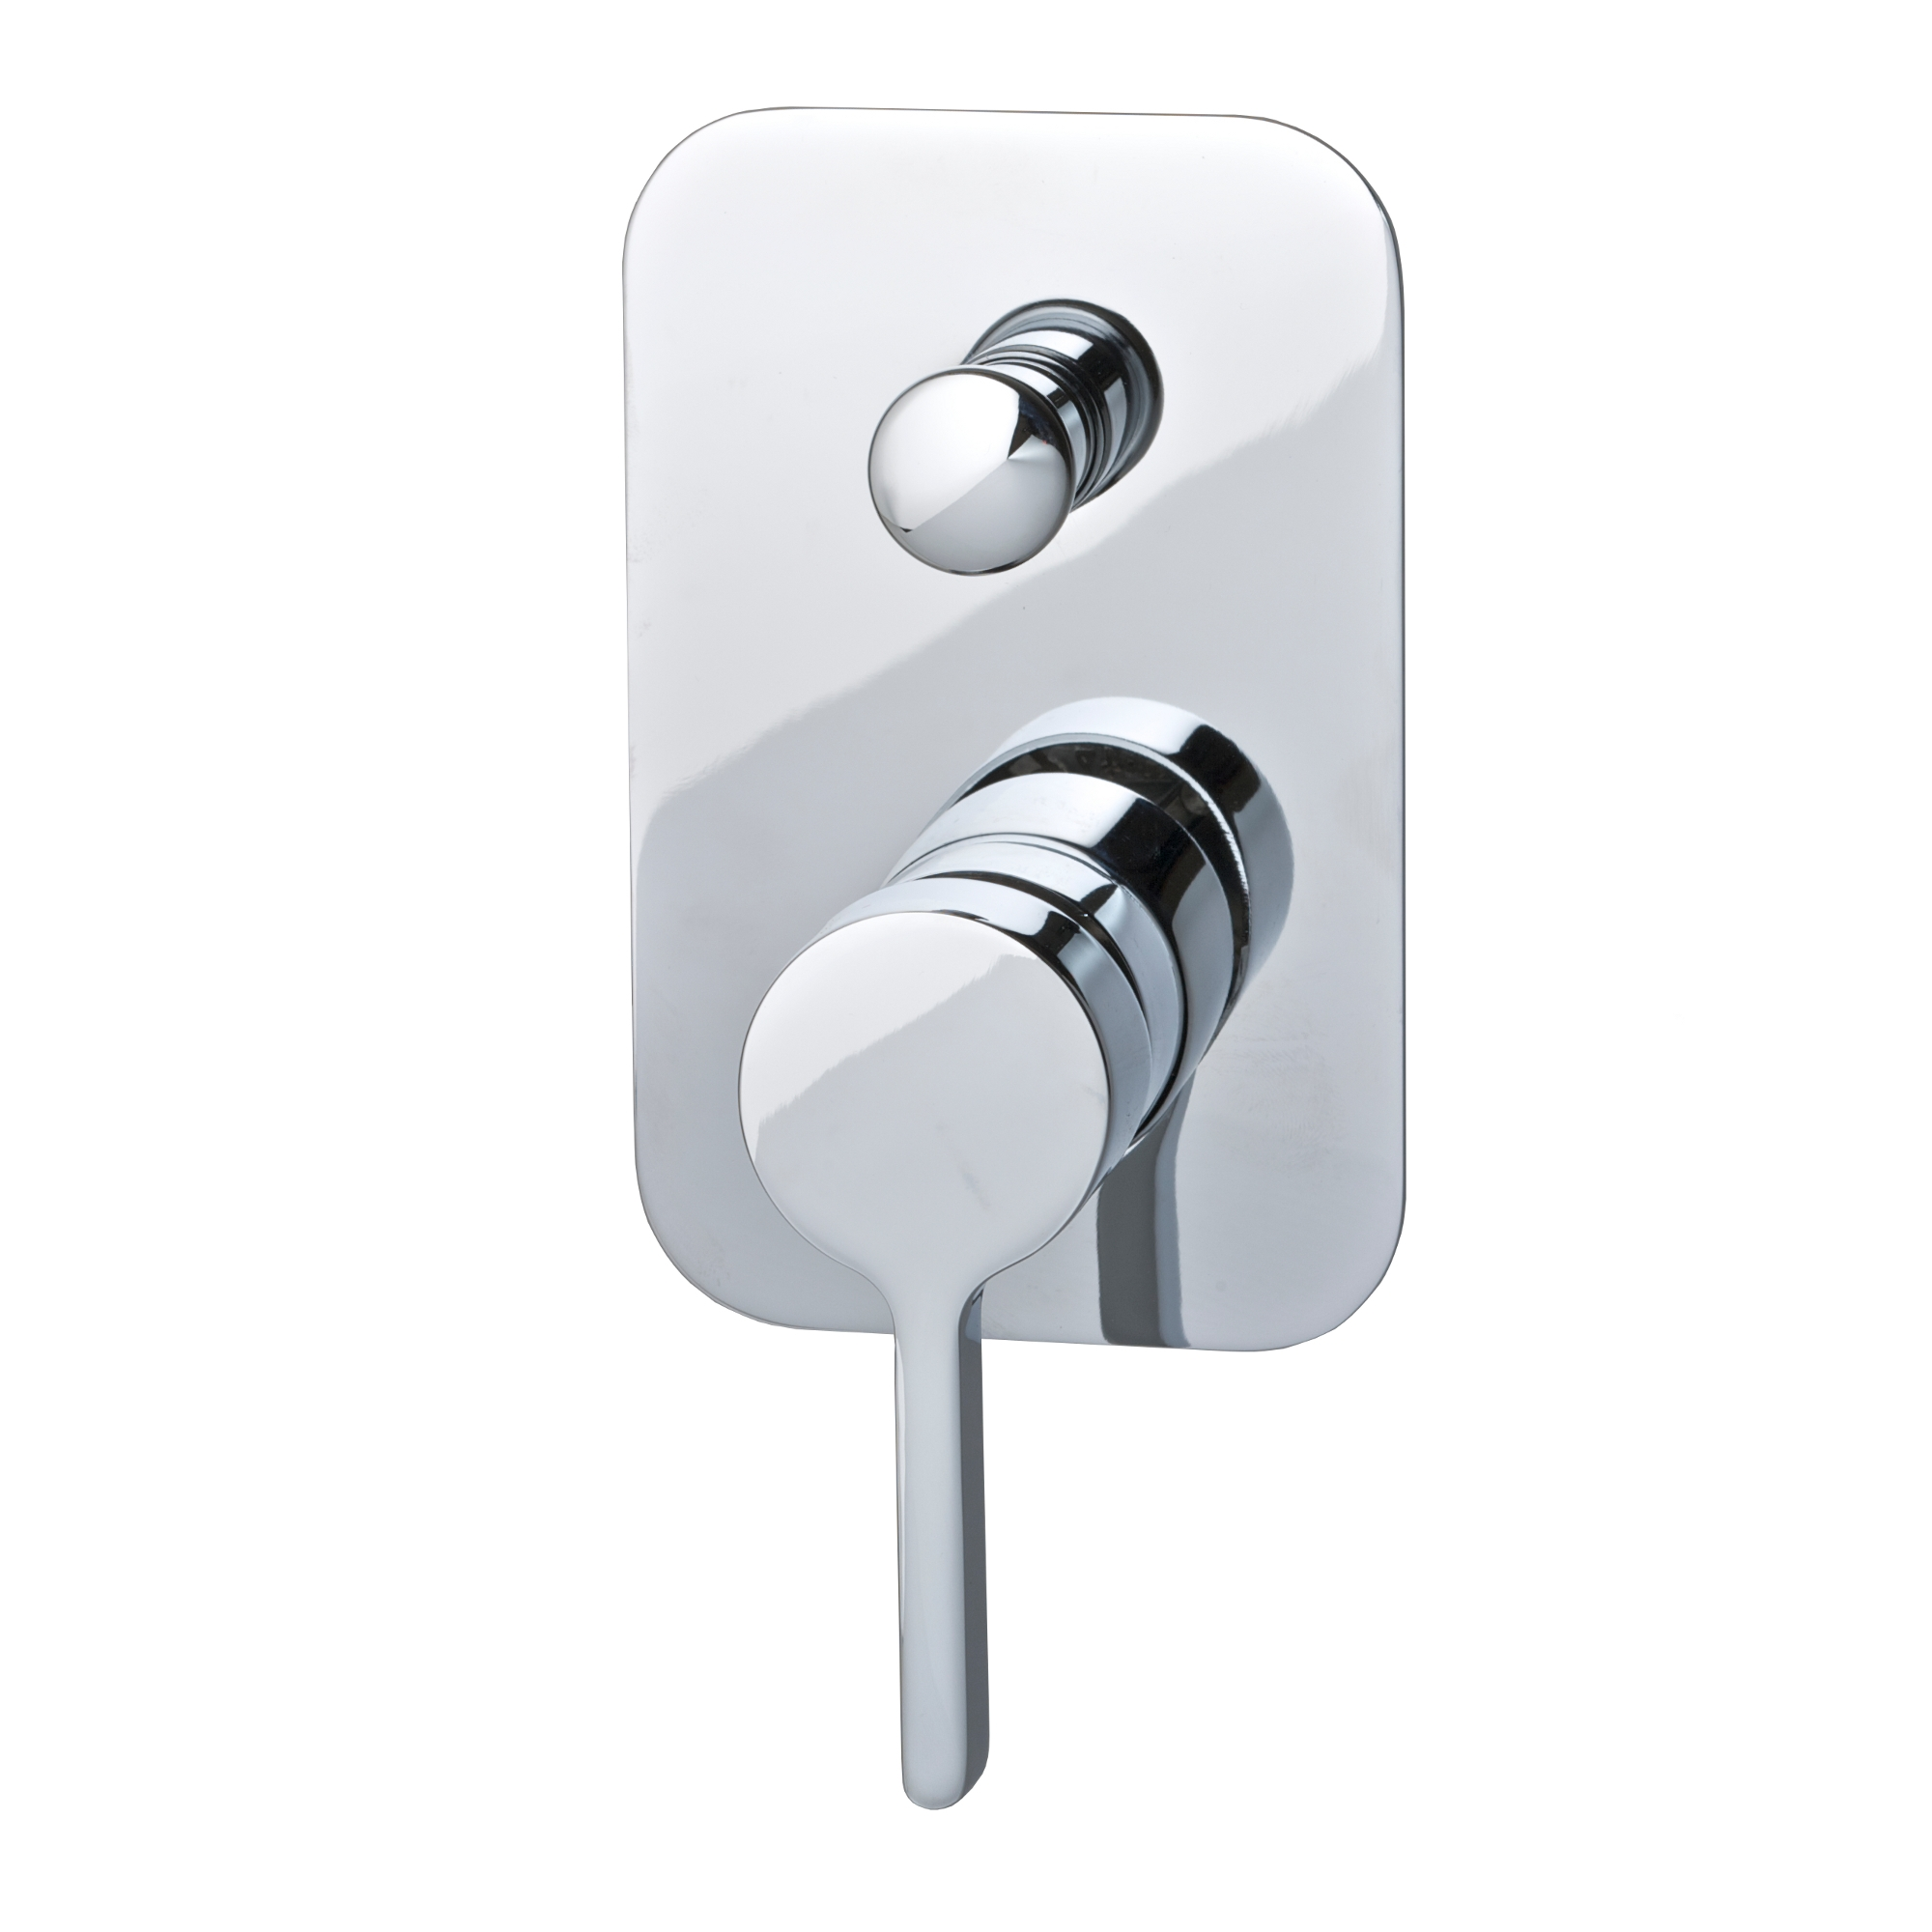 Brighton Wall Mounted Shower Mixer with Diverter - Chrome or Matte Black